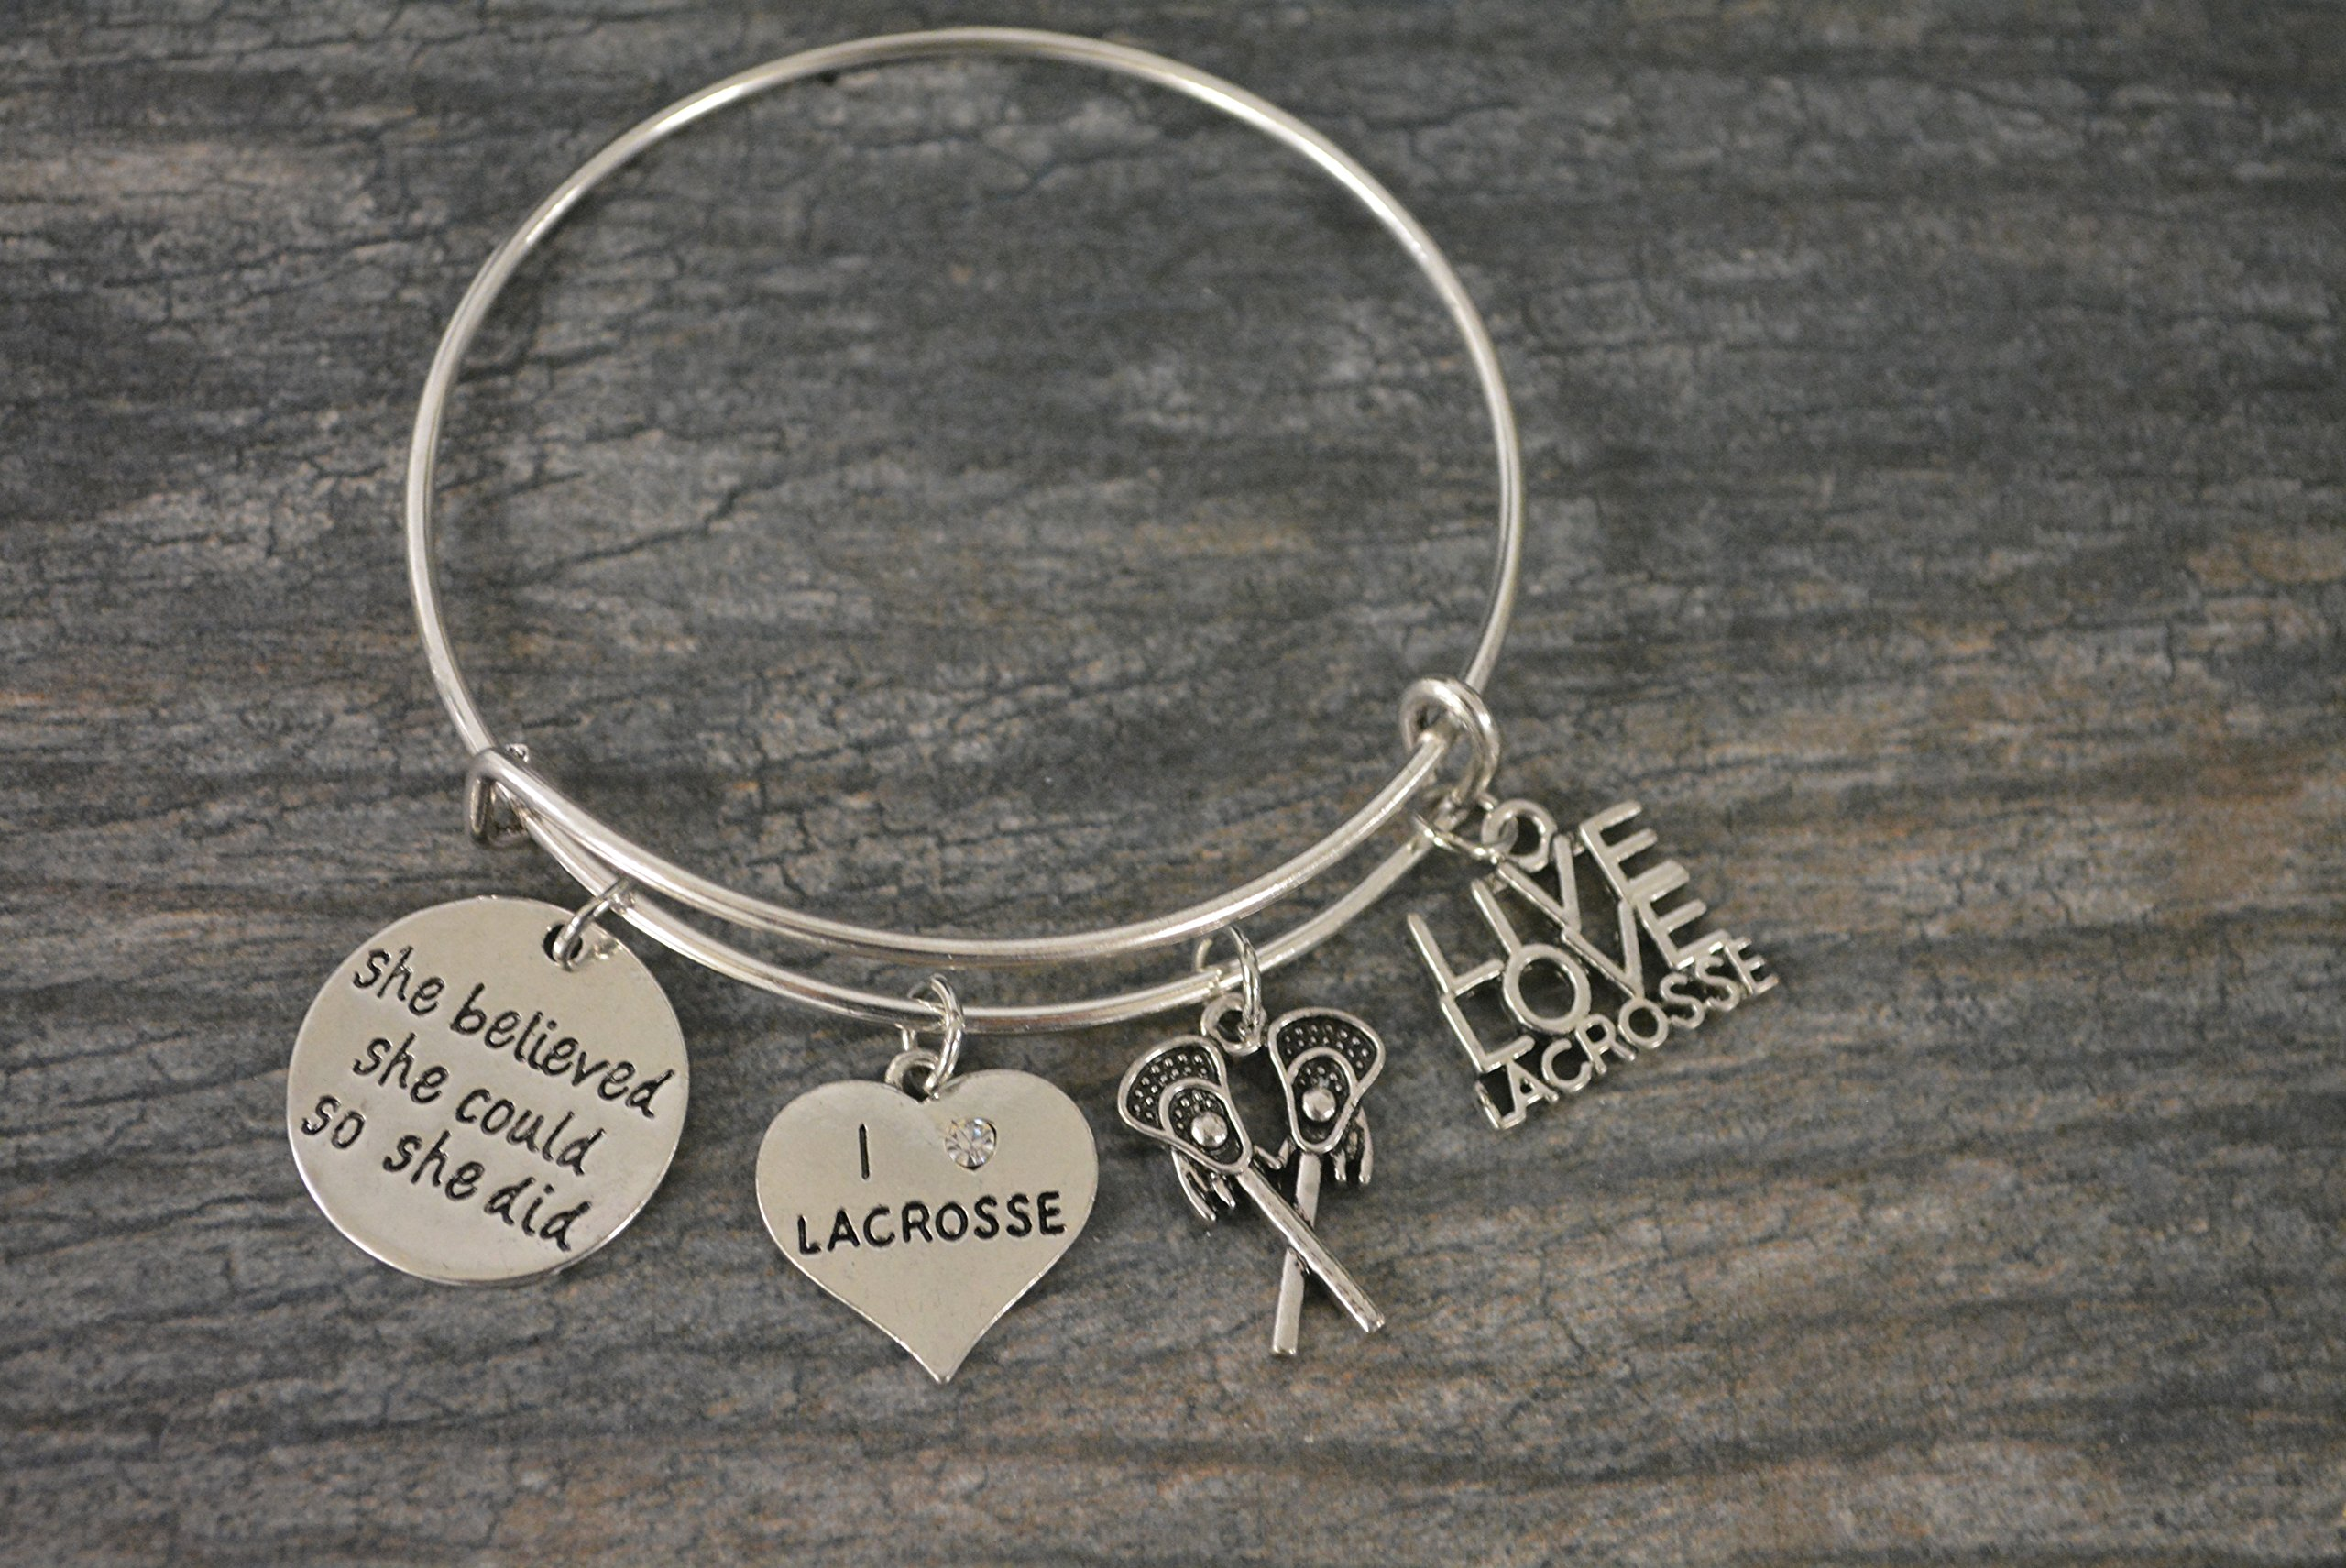 Infinity Collection Lacrosse Charm Bangle Bracelet, Girls Lacrosse She Believed She Could So She Did Jewelry Lacrosse Gifts For Female Lacrosse Players by Infinity Collection (Image #2)